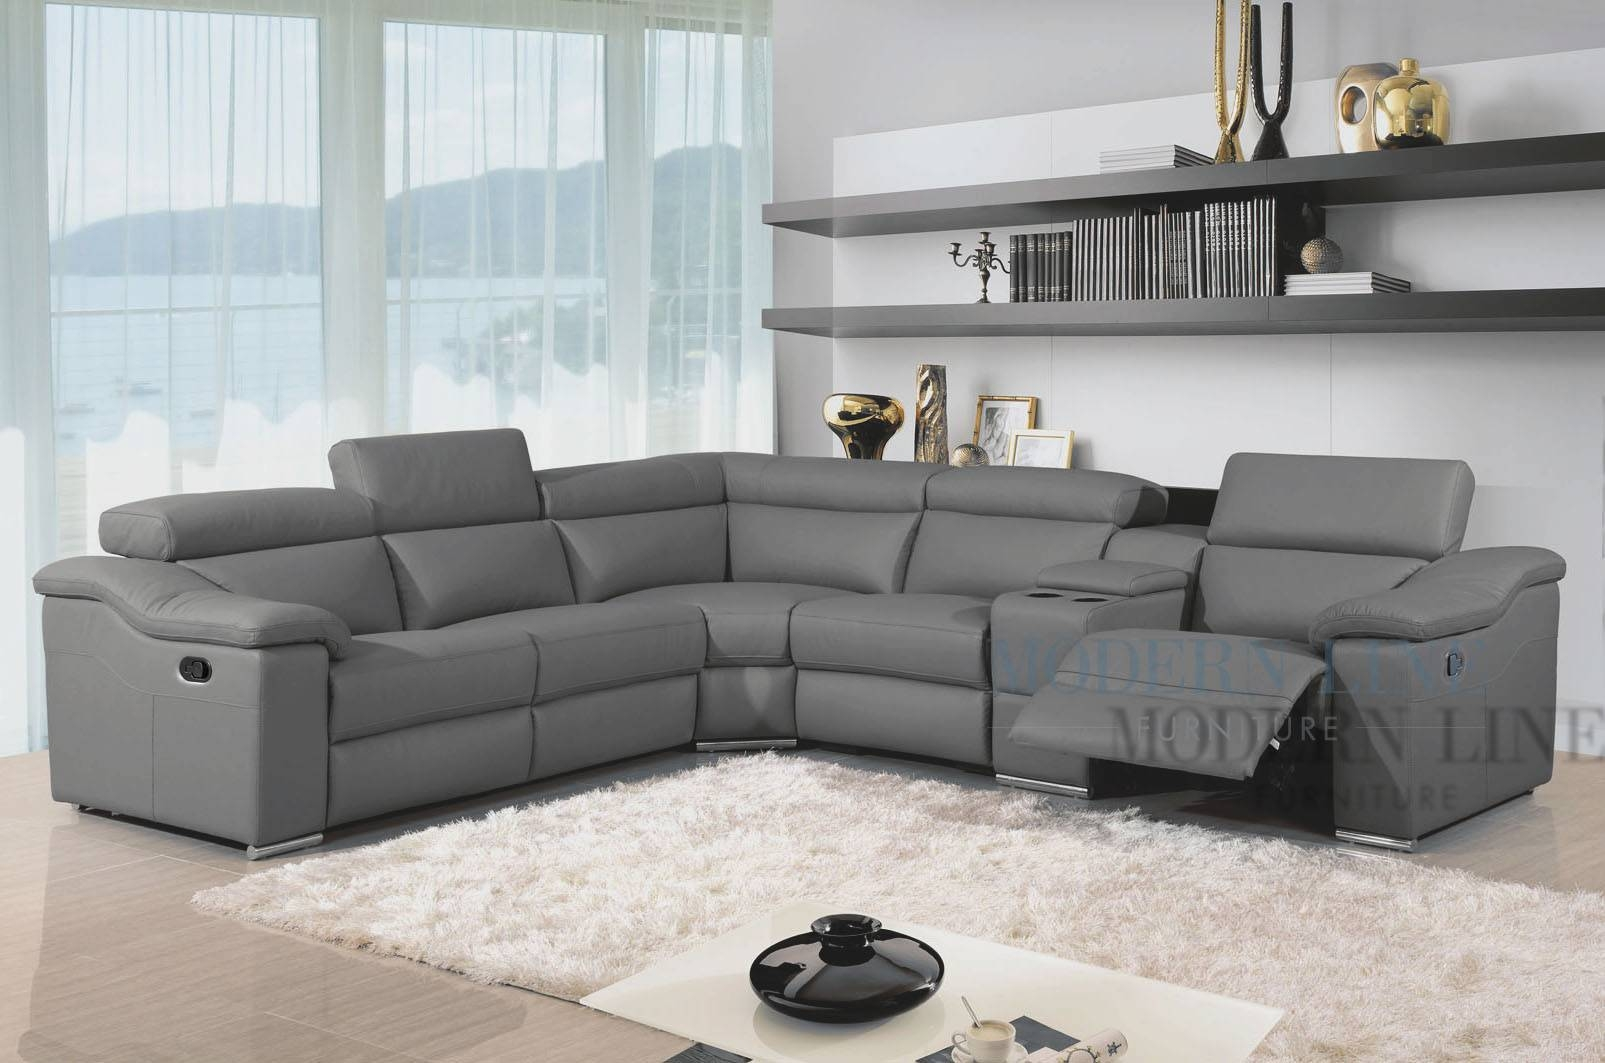 Furniture: Lazy Boy Sectional | Sectional Couches With Recliners intended for Sectional Sofas With Electric Recliners (Image 14 of 30)